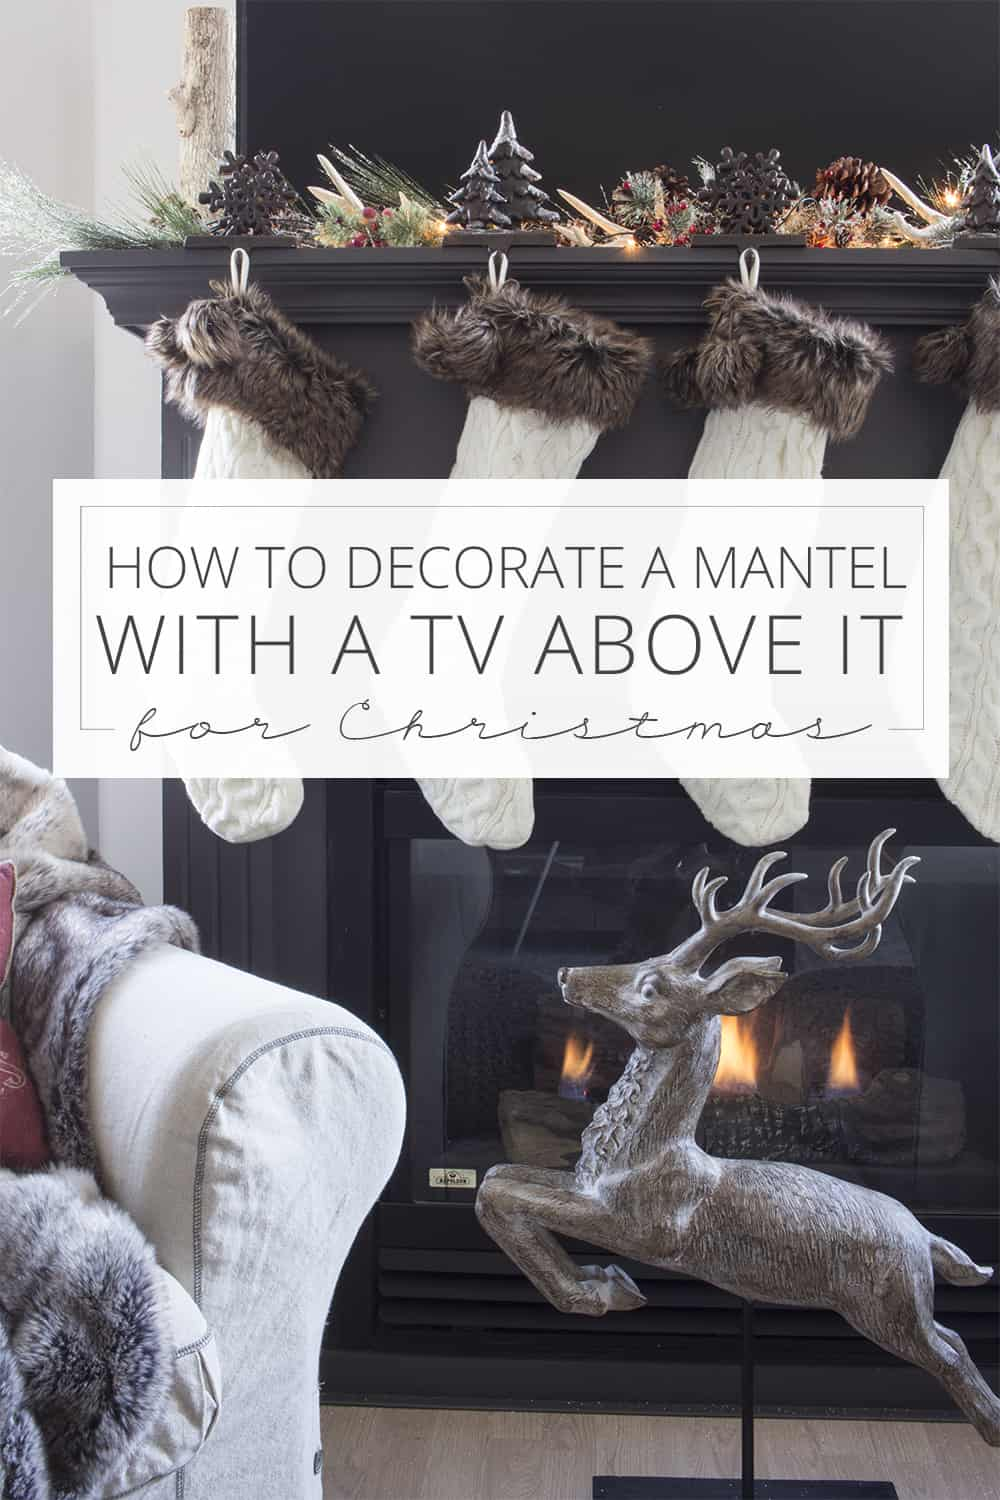 How To Decorate A Hearth: How To Decorate A Mantel With A TV Above It For Christmas